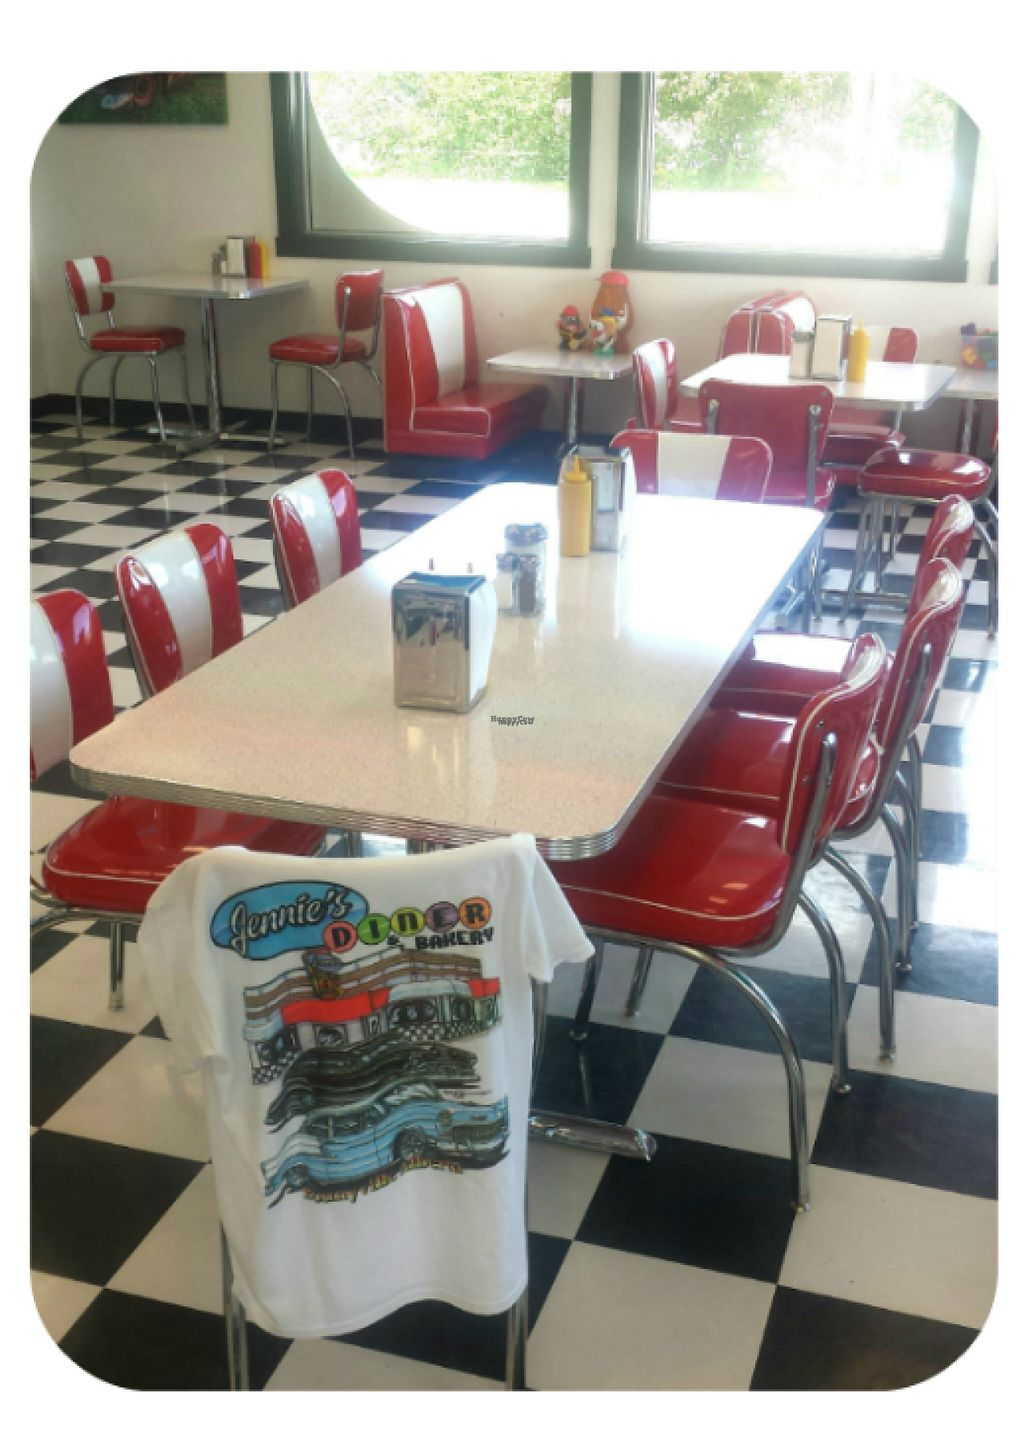 """Photo of Jennie's Diner and Bakery   by <a href=""""/members/profile/community"""">community</a> <br/>Inside Jennie's Diner and Bakery  <br/> November 2, 2016  - <a href='/contact/abuse/image/81925/186009'>Report</a>"""